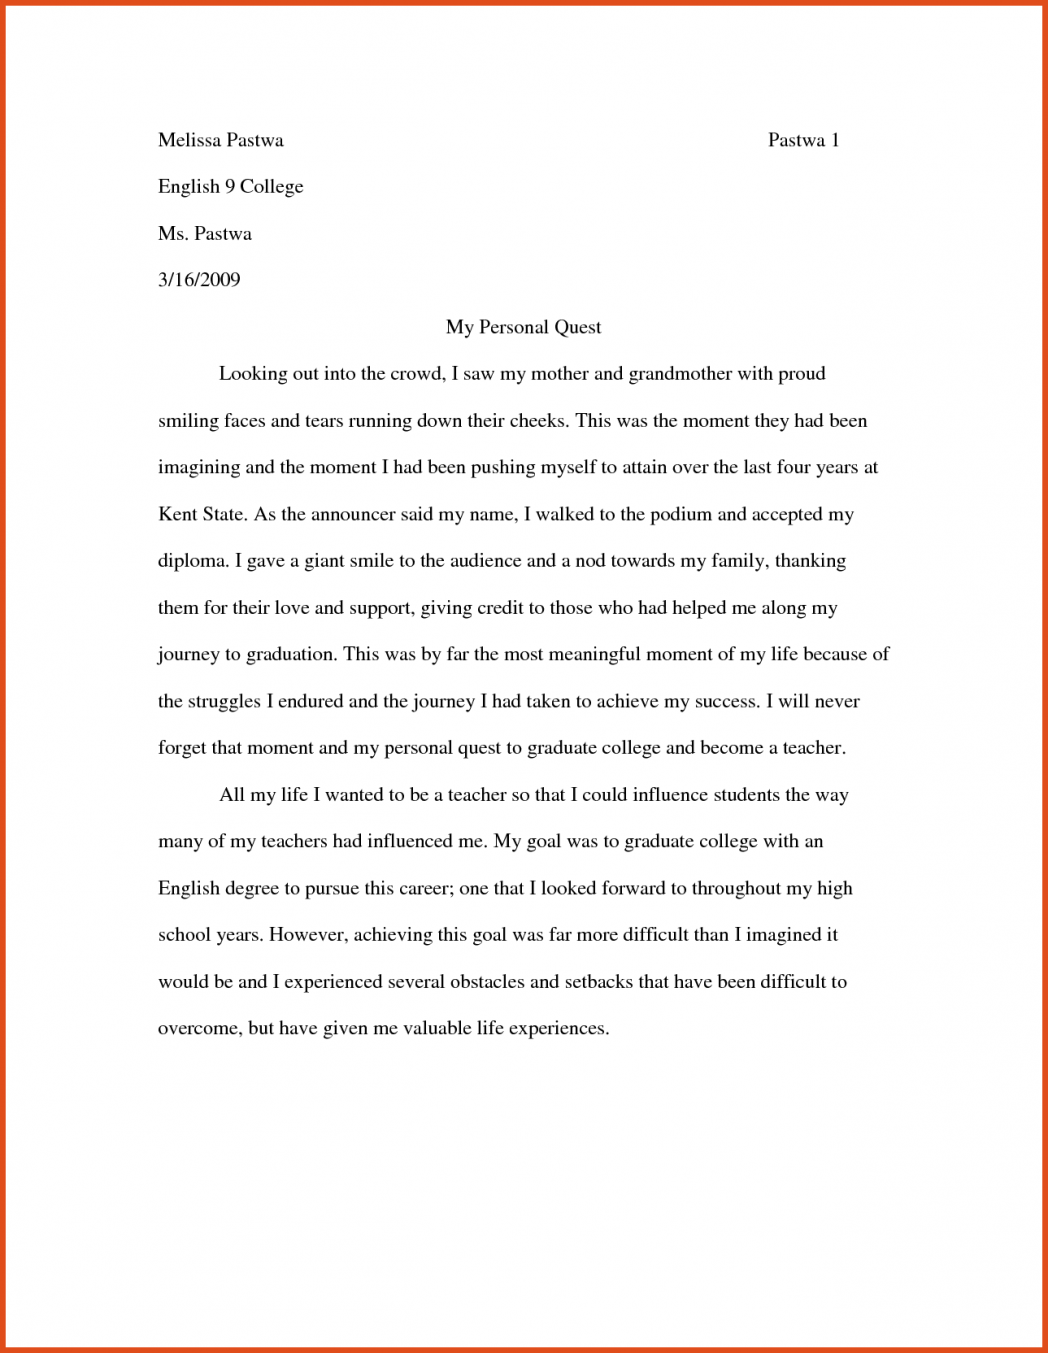 020 Sample College Essay Example In Pdf Epic Examples How Toite About Yourself Essaysiting Format For High School Stude Scholarship Good Myself Start